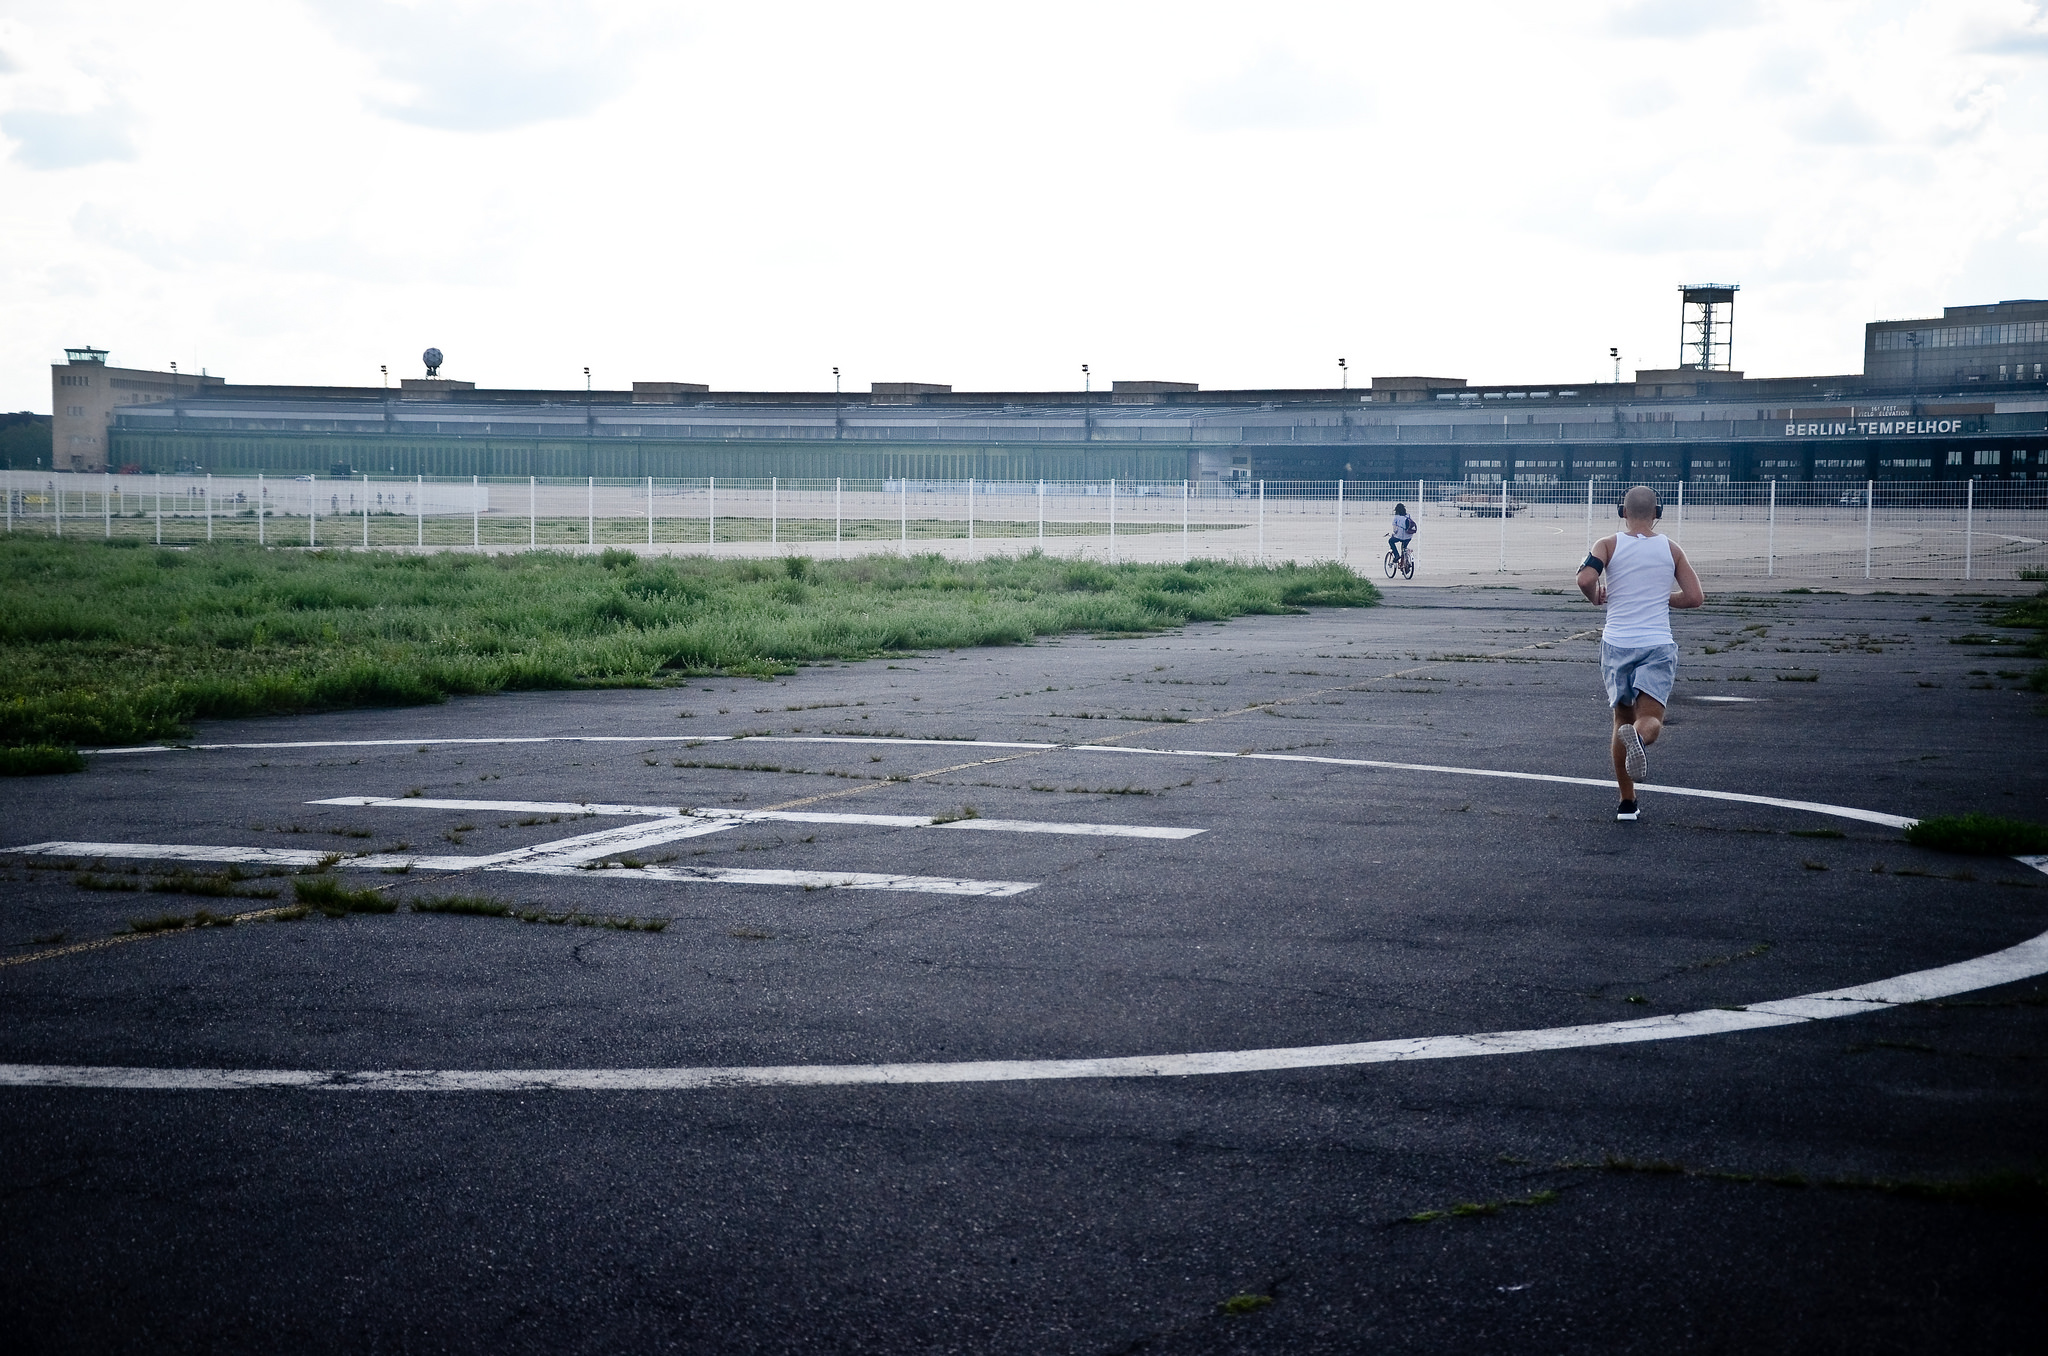 Un weekend da ricordare – Parte terza: Tempelhofer Feld